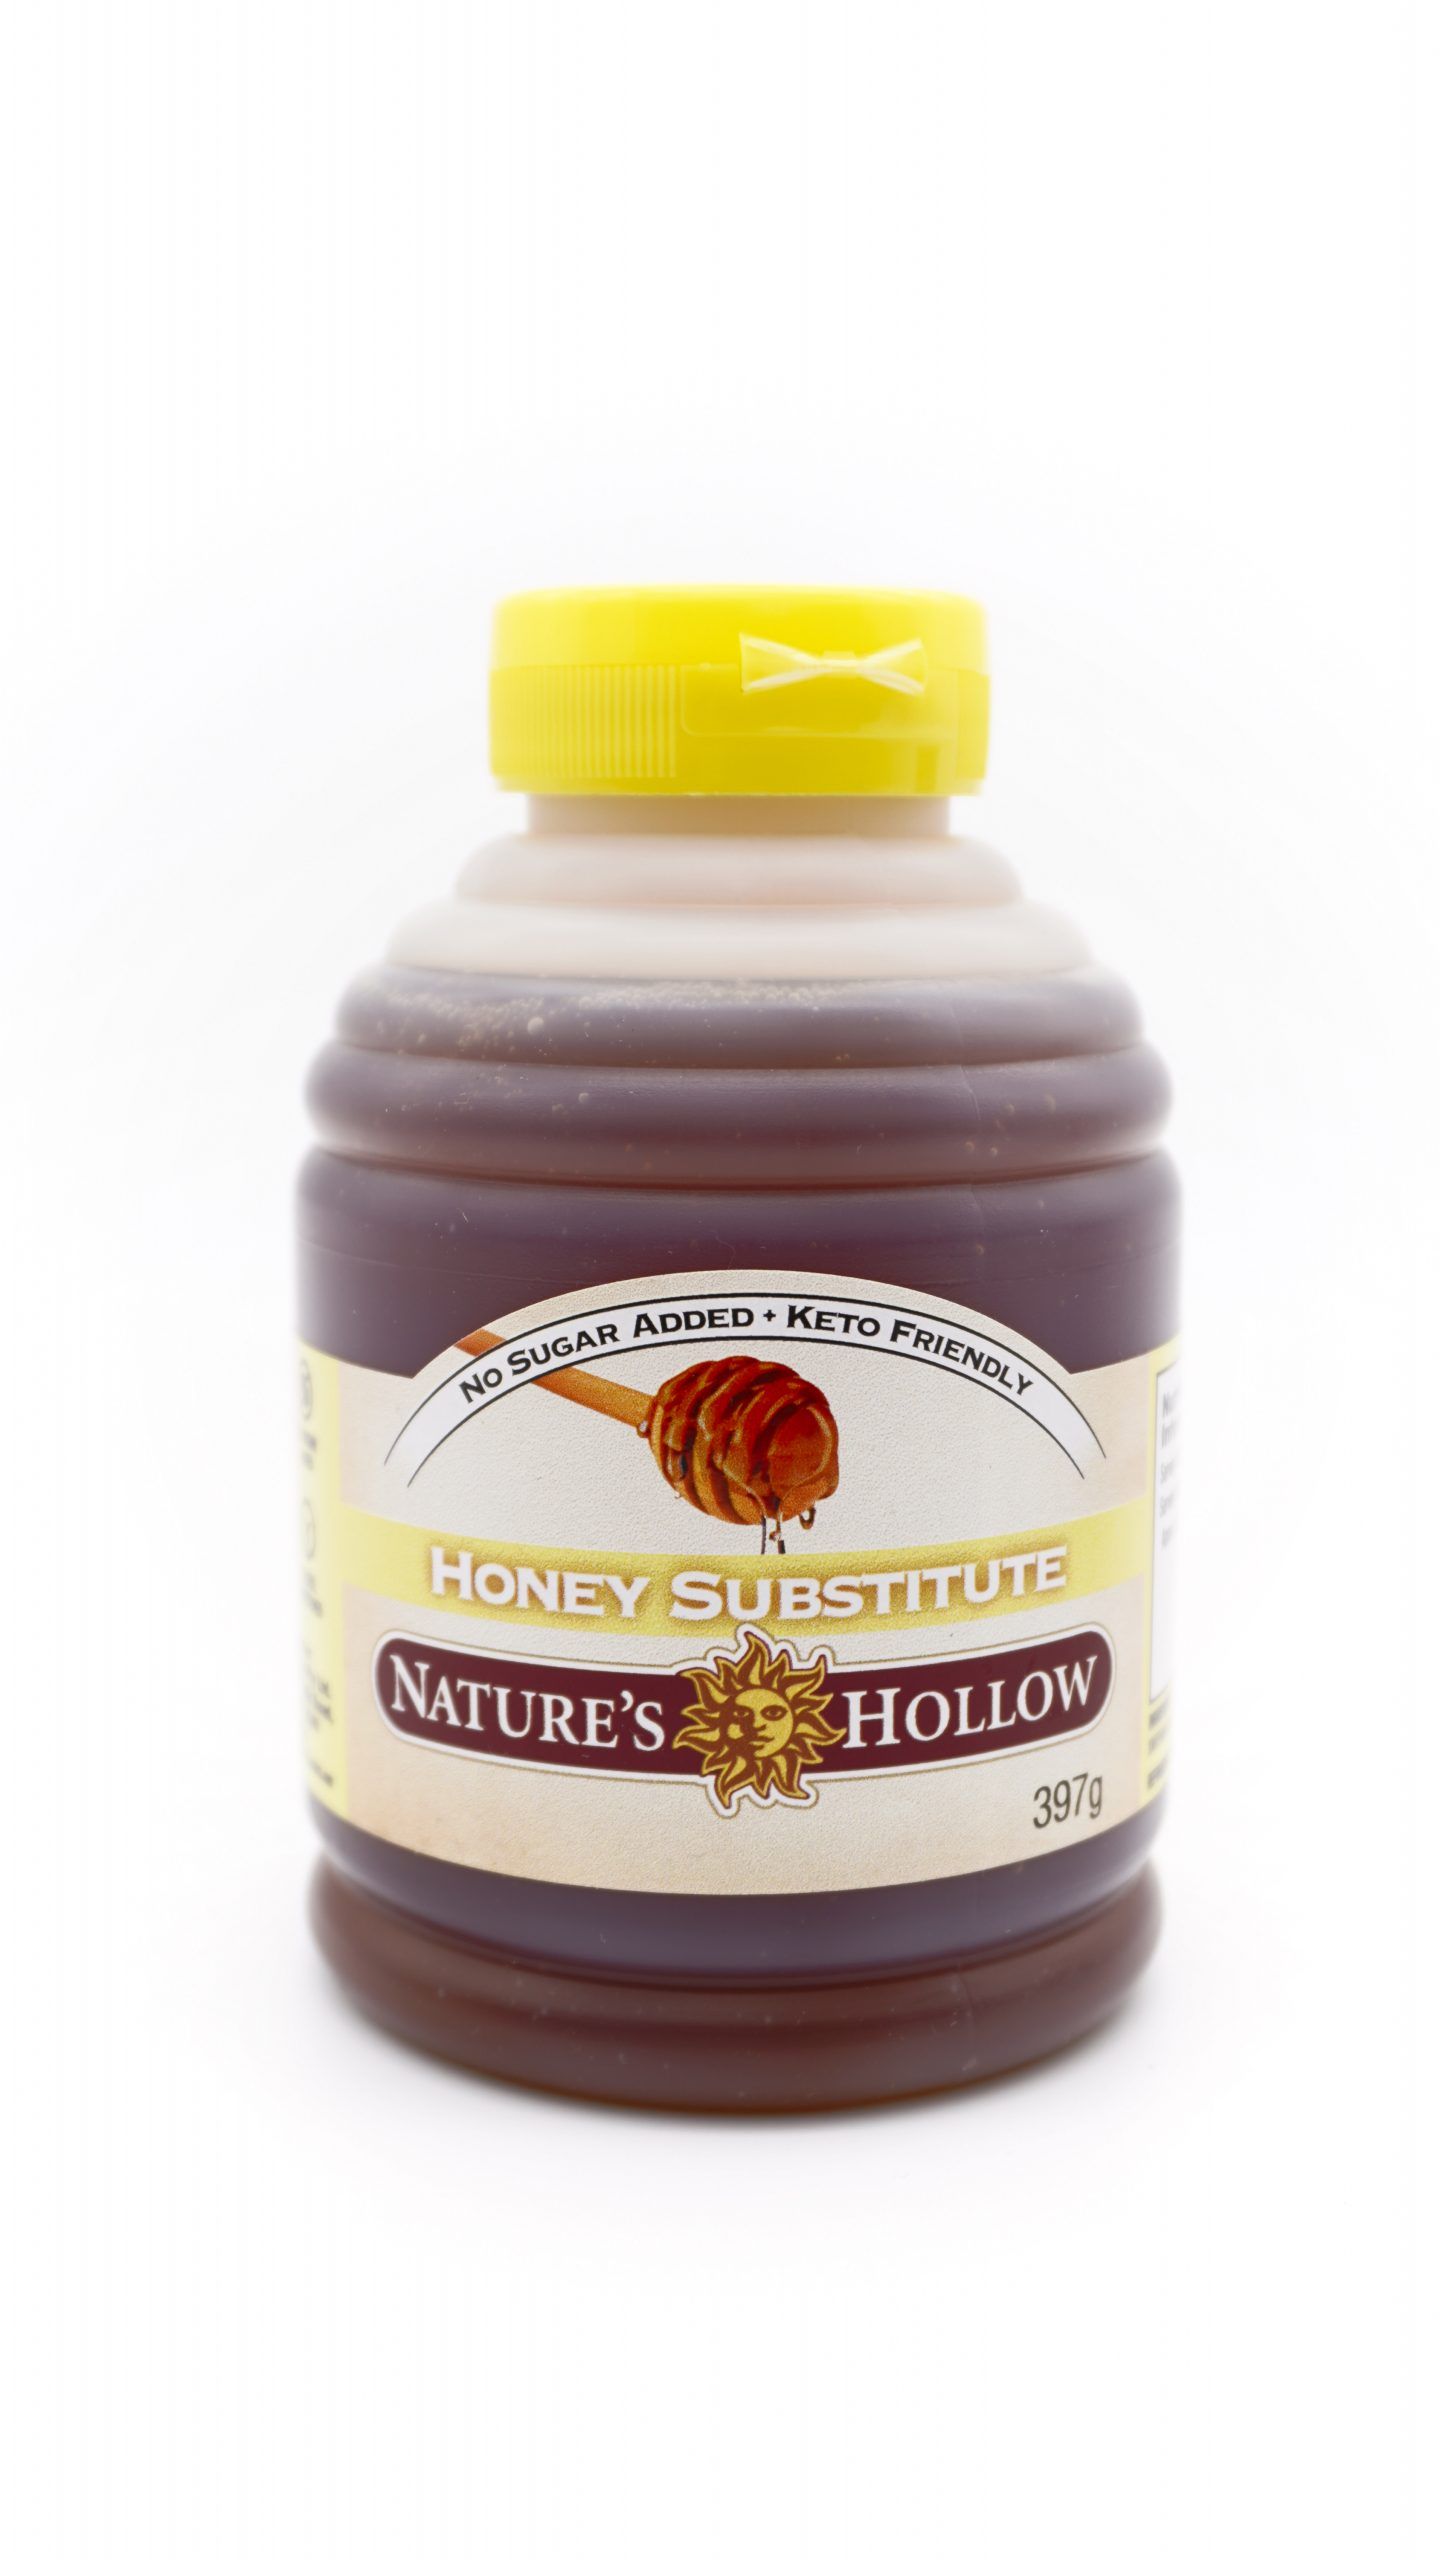 Keto Honey substitute 397g